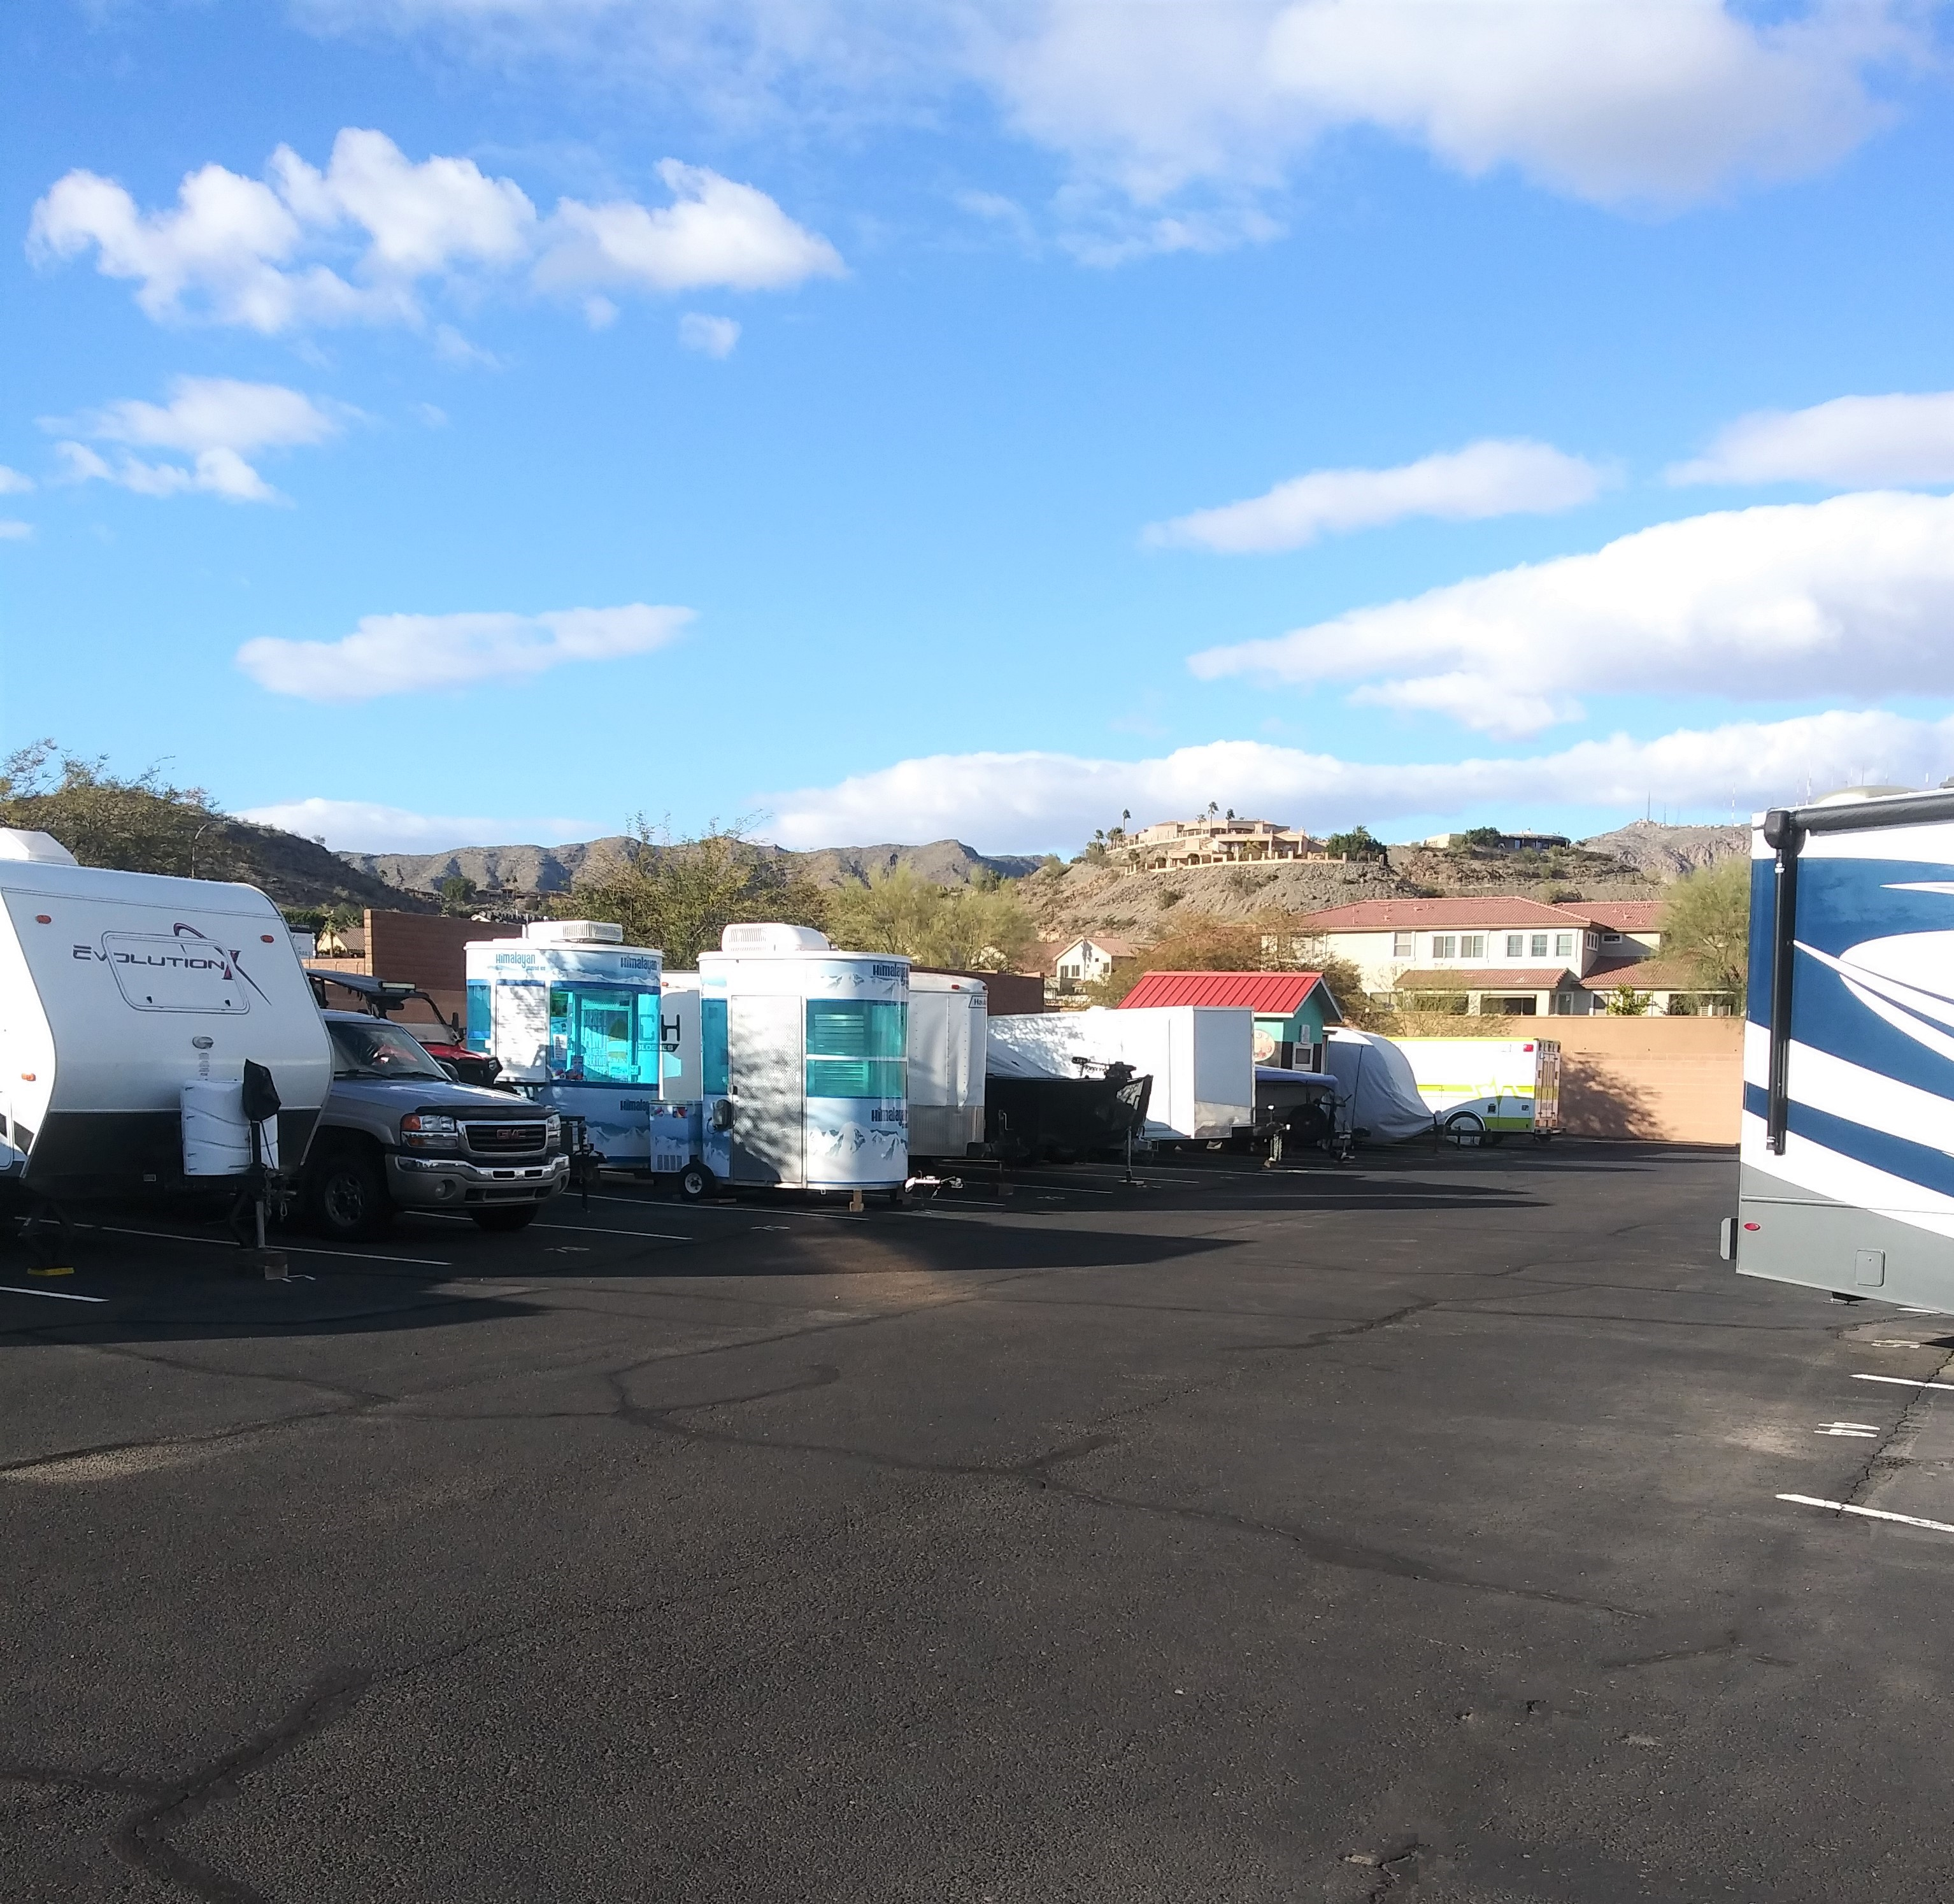 Ahwatukee Foothills Self Storage